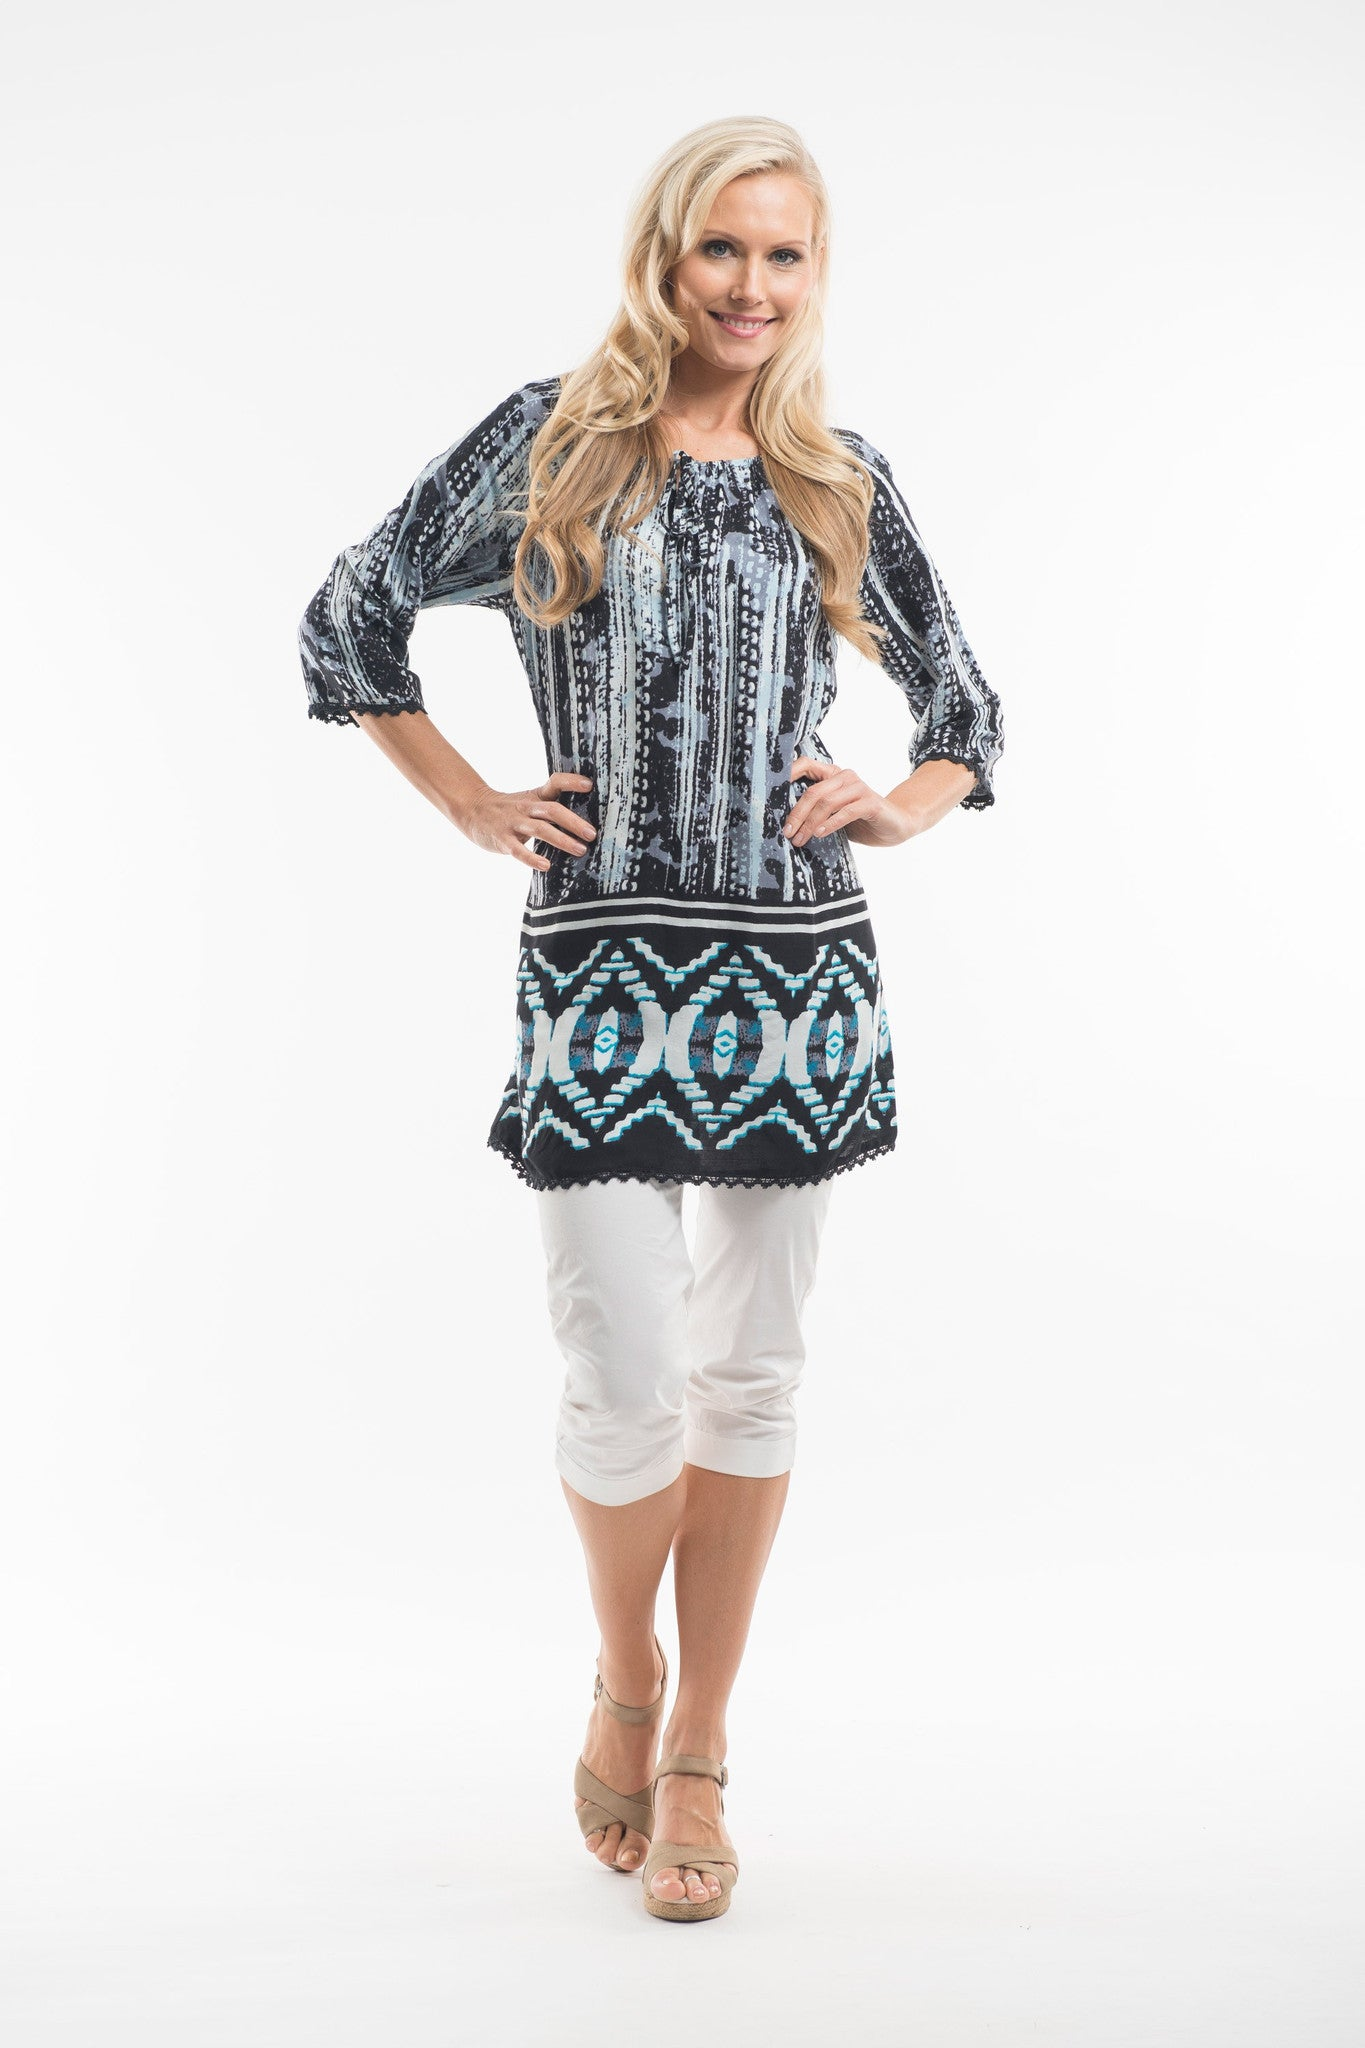 Ronnie Relax Tunic Top | I Love Tunics | Tunic Tops | Tunic | Tunic Dresses  | womens clothing online